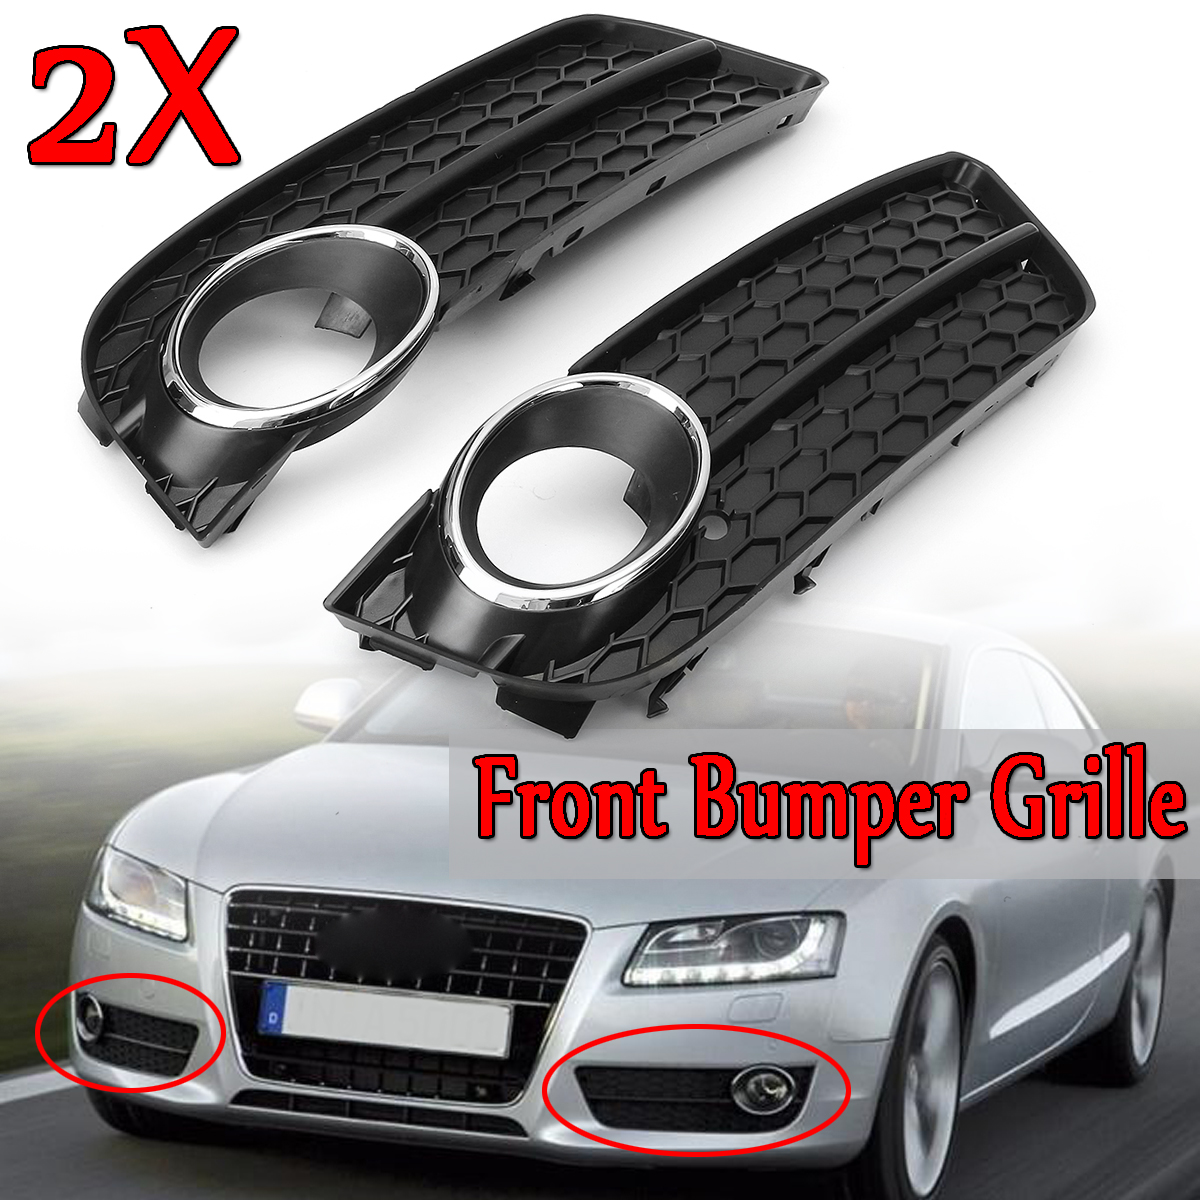 A Pair Front Bumper Fog Light Lamp Racing Grille Grill Cover For Audi A5 For Coupe/Sportback 2008-11 Cabriolet 10-11 Chrome TrimA Pair Front Bumper Fog Light Lamp Racing Grille Grill Cover For Audi A5 For Coupe/Sportback 2008-11 Cabriolet 10-11 Chrome Trim